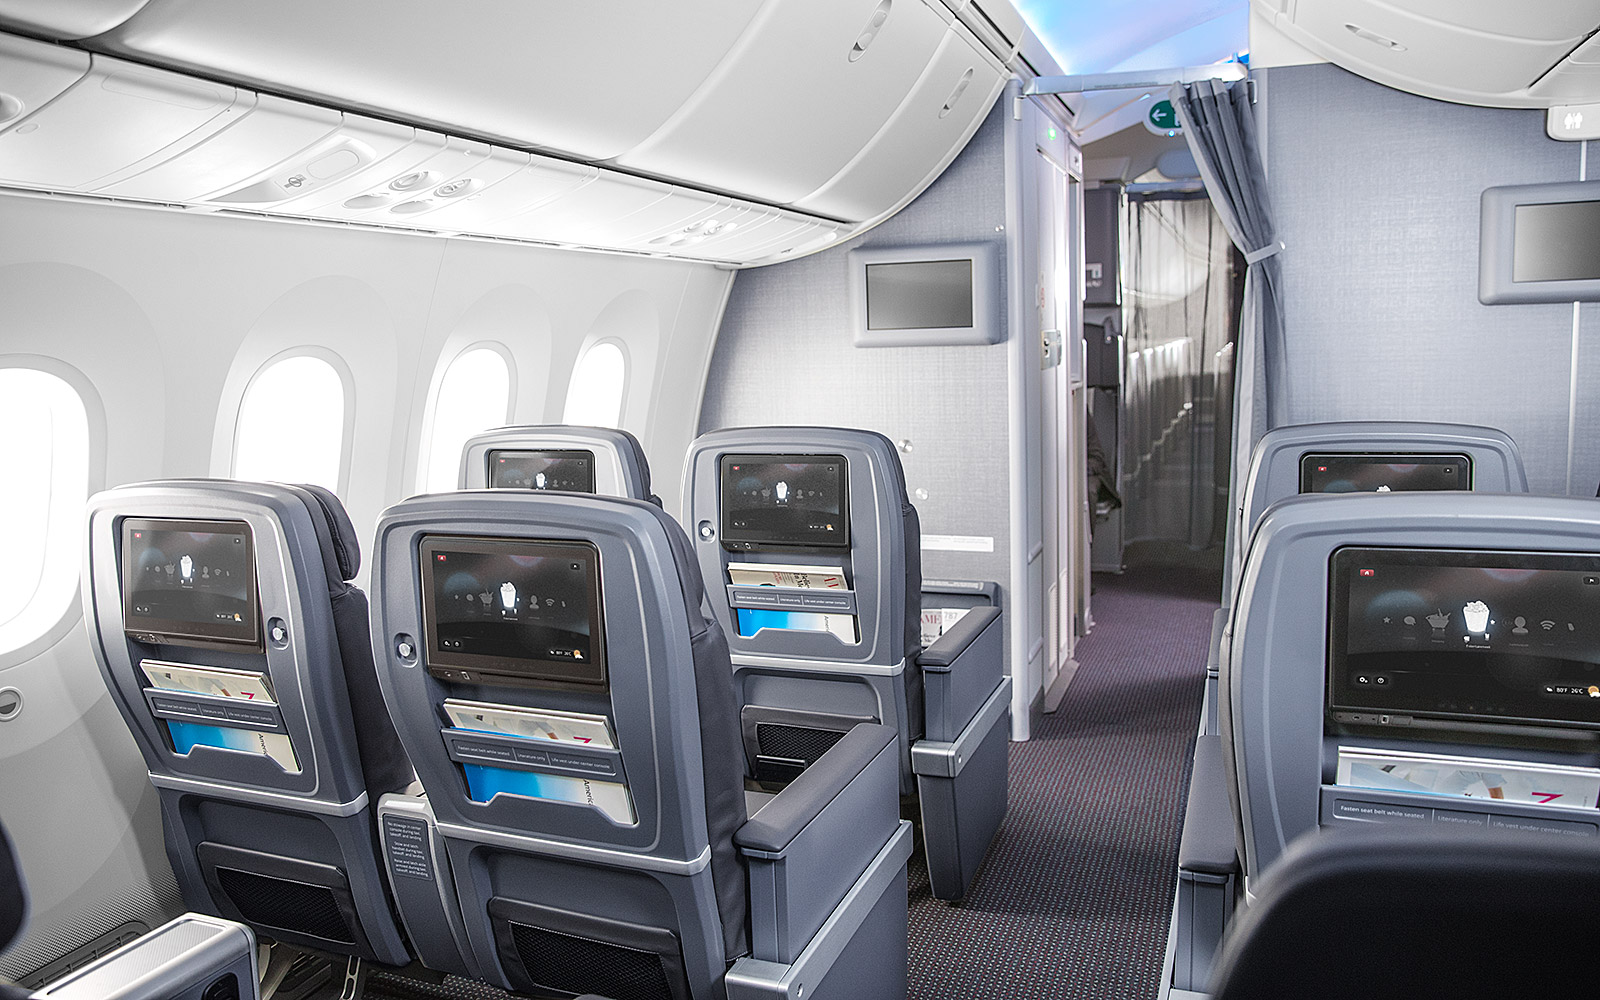 American Airlines expands Premium Economy to these routes